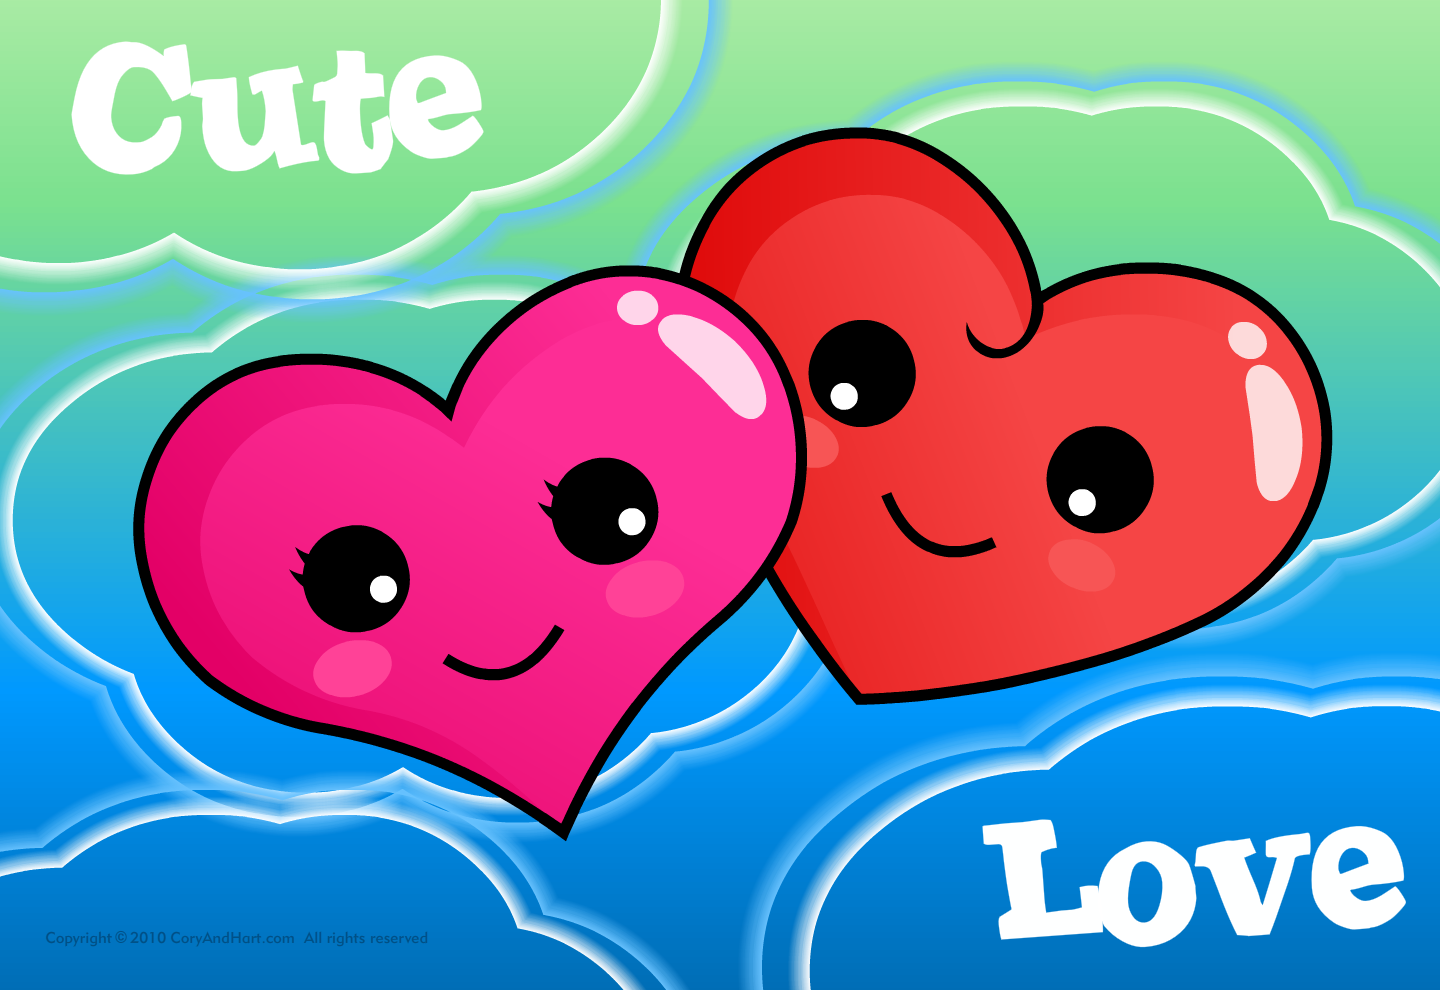 Free Cute Love Wallpapers